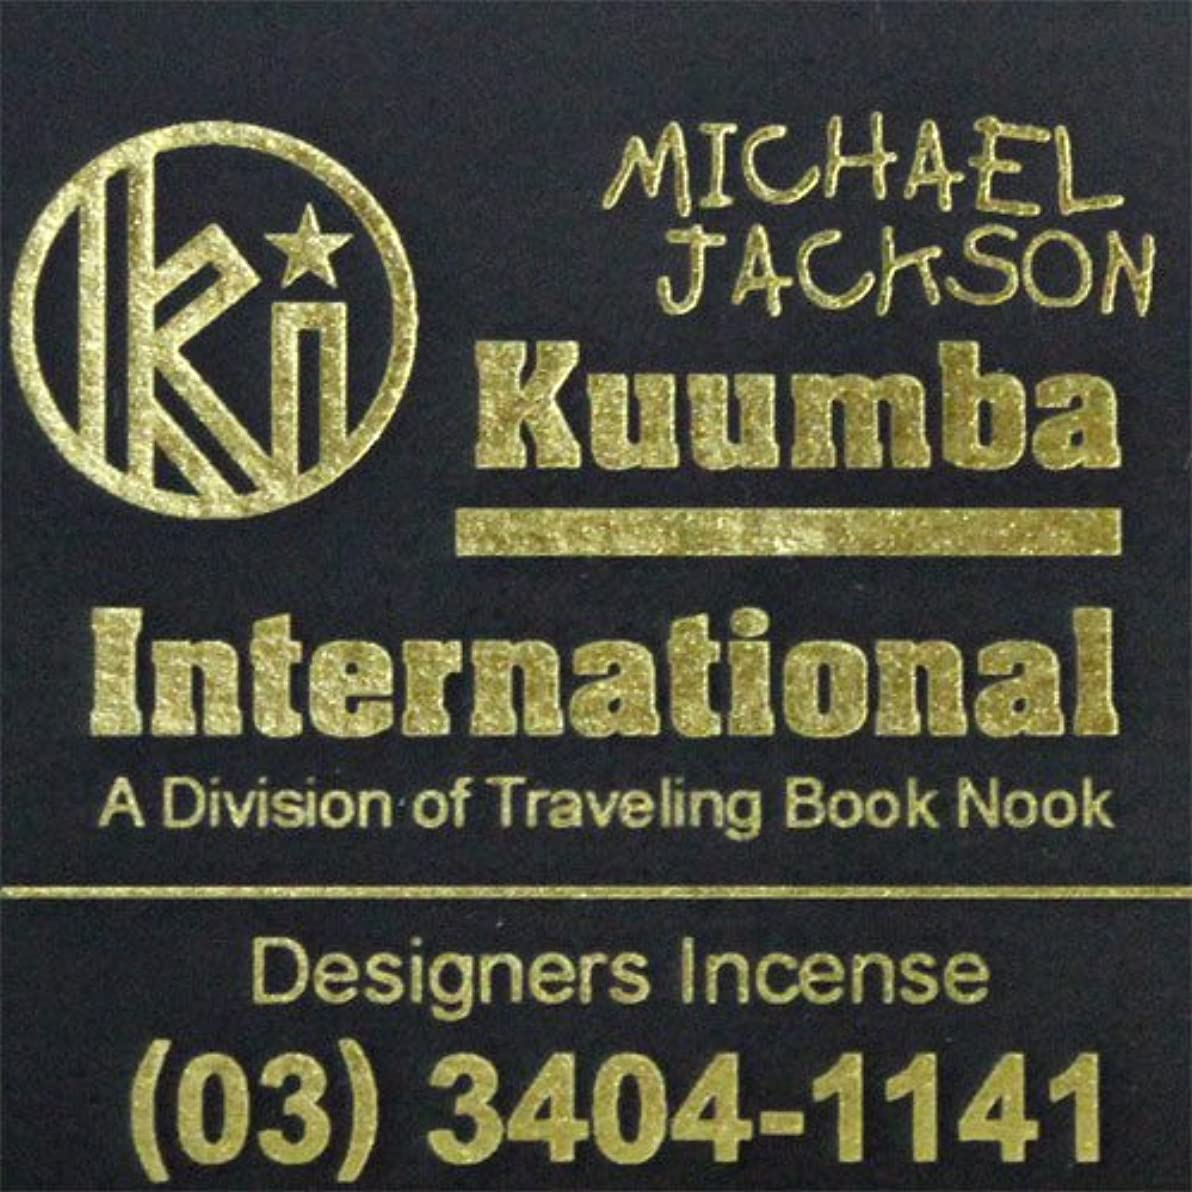 転送保安急速な(クンバ) KUUMBA『incense』(MICHAEL JACKSON) (Regular size)